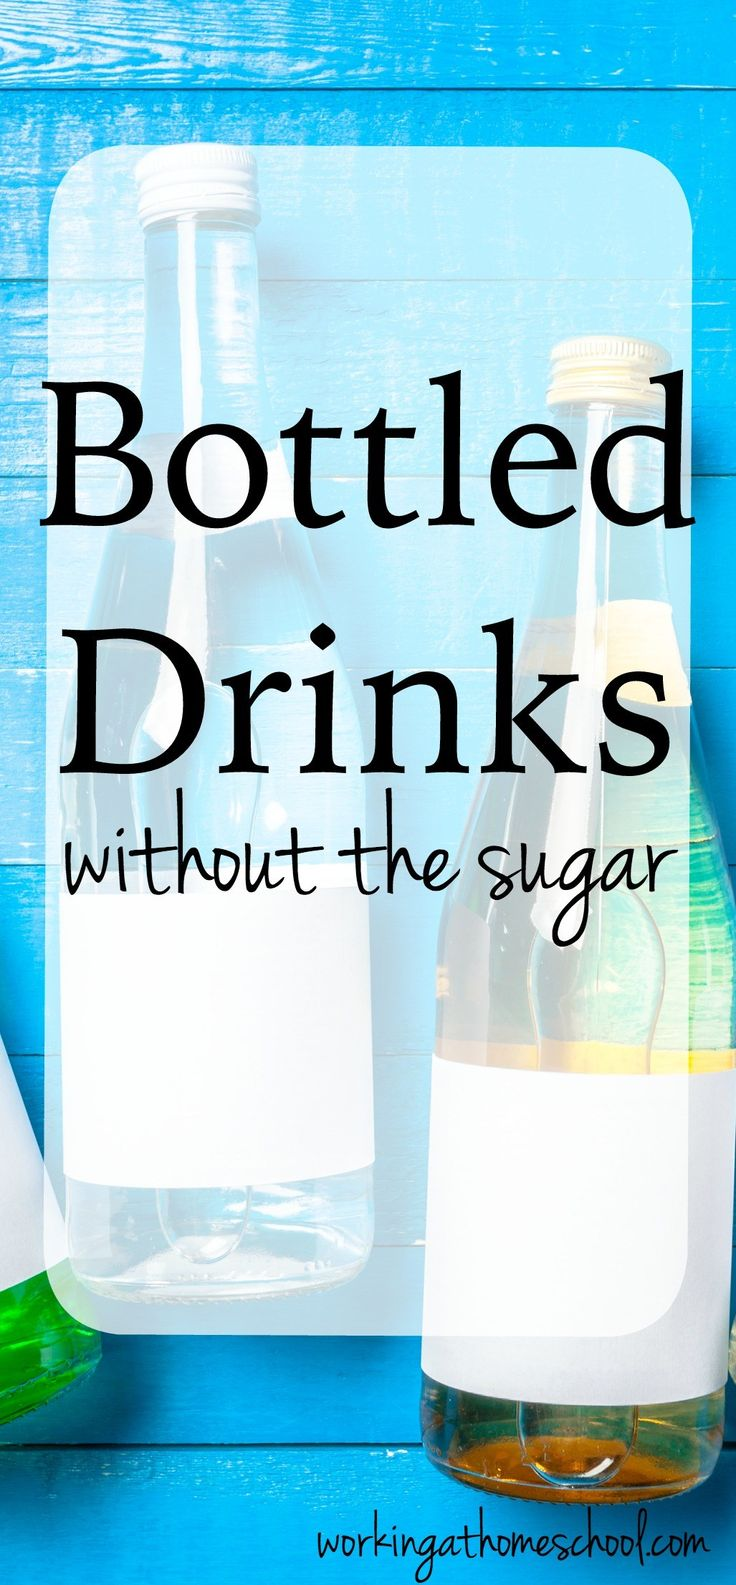 A list of low-carb drinks that will work for a low-glycemic diet...I use these for Trim Healthy Mama, but these could work for Atkins, South Beach, and other low-glycemic diets, too! Perfect for running errands or when you're tired of water.